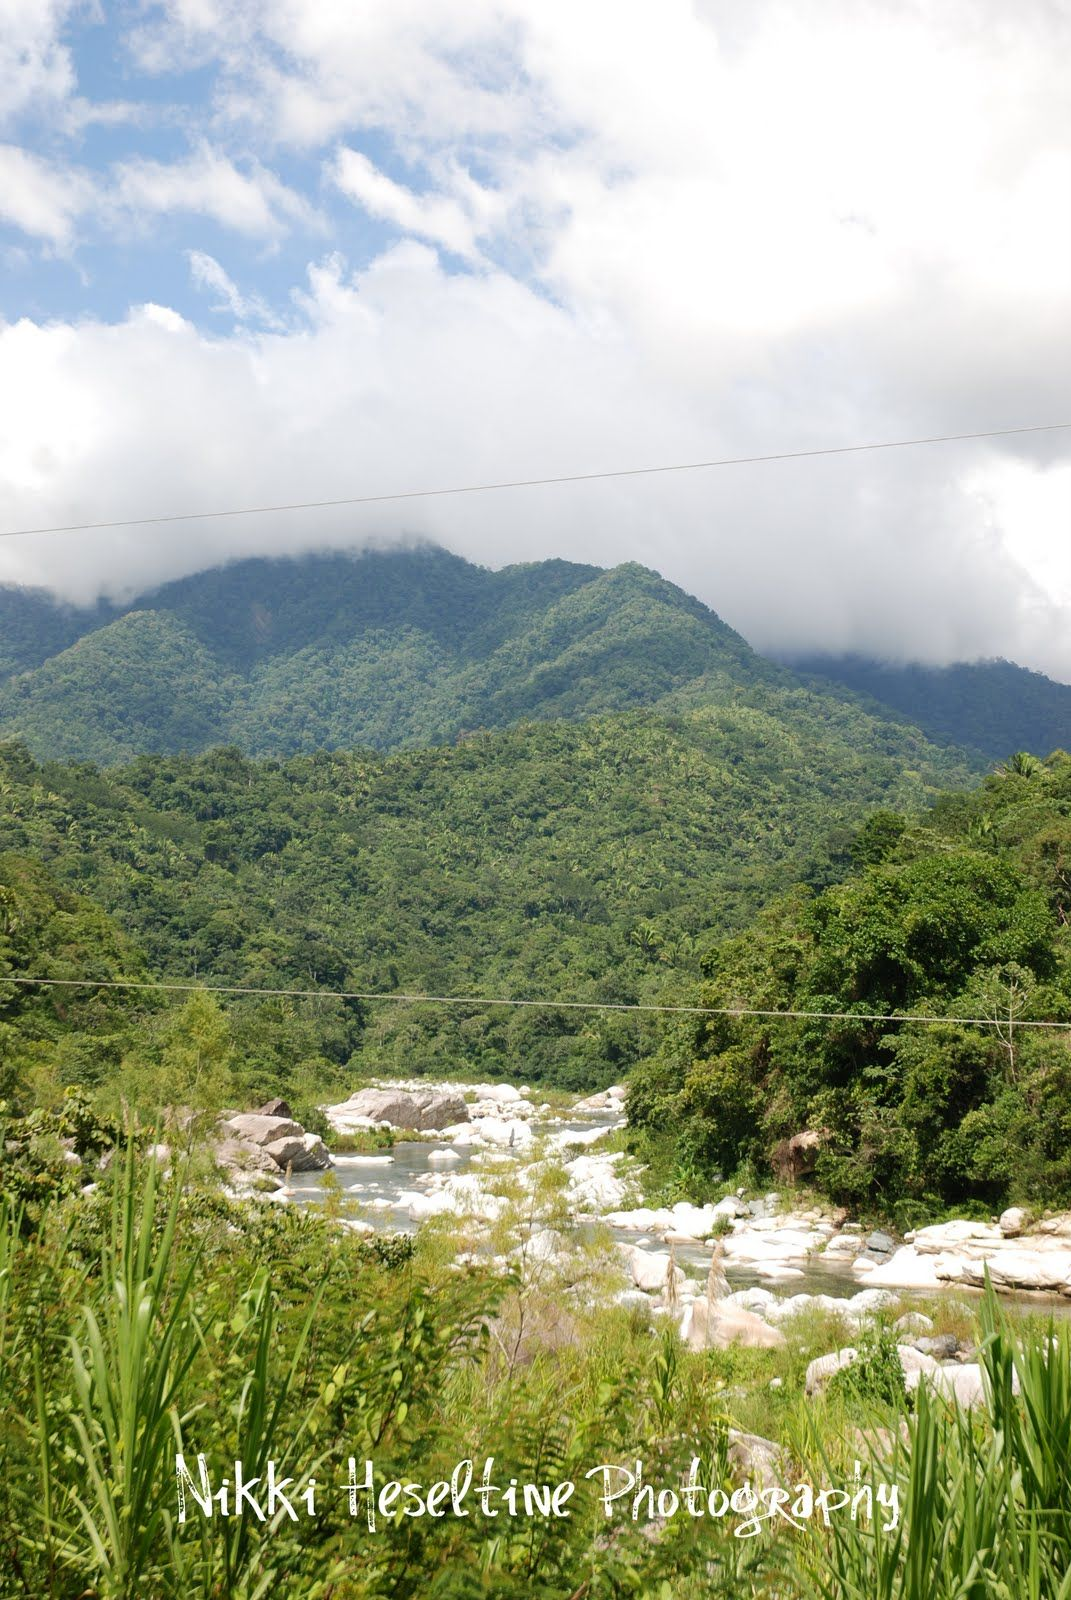 Honduras has two different climate regions, this is an